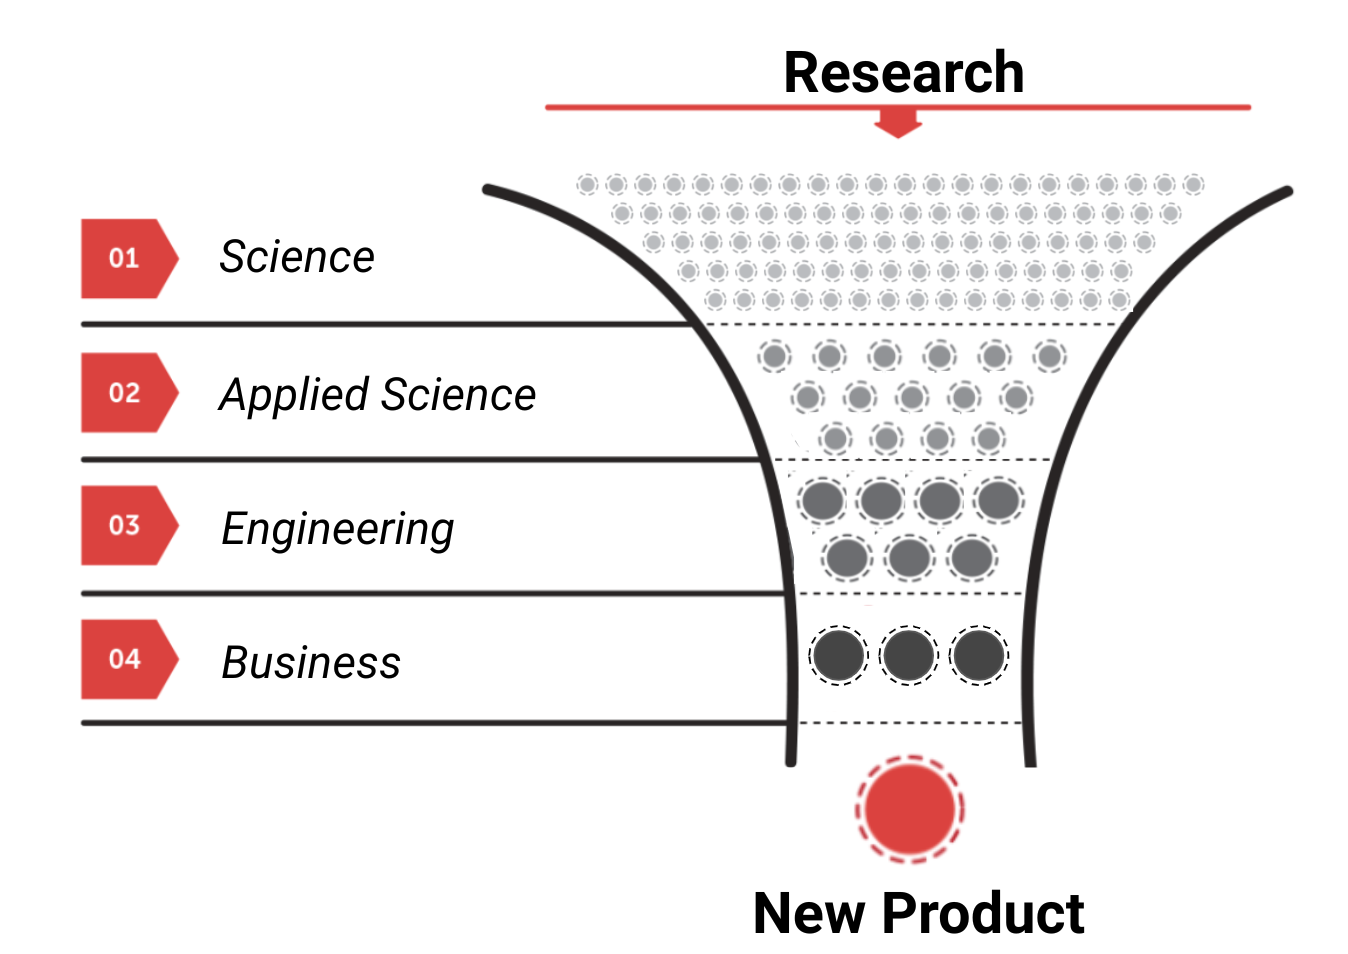 Surprising New Findings On Academic >> Ideas On How To Improve Scientific Research Brian Armstrong Medium